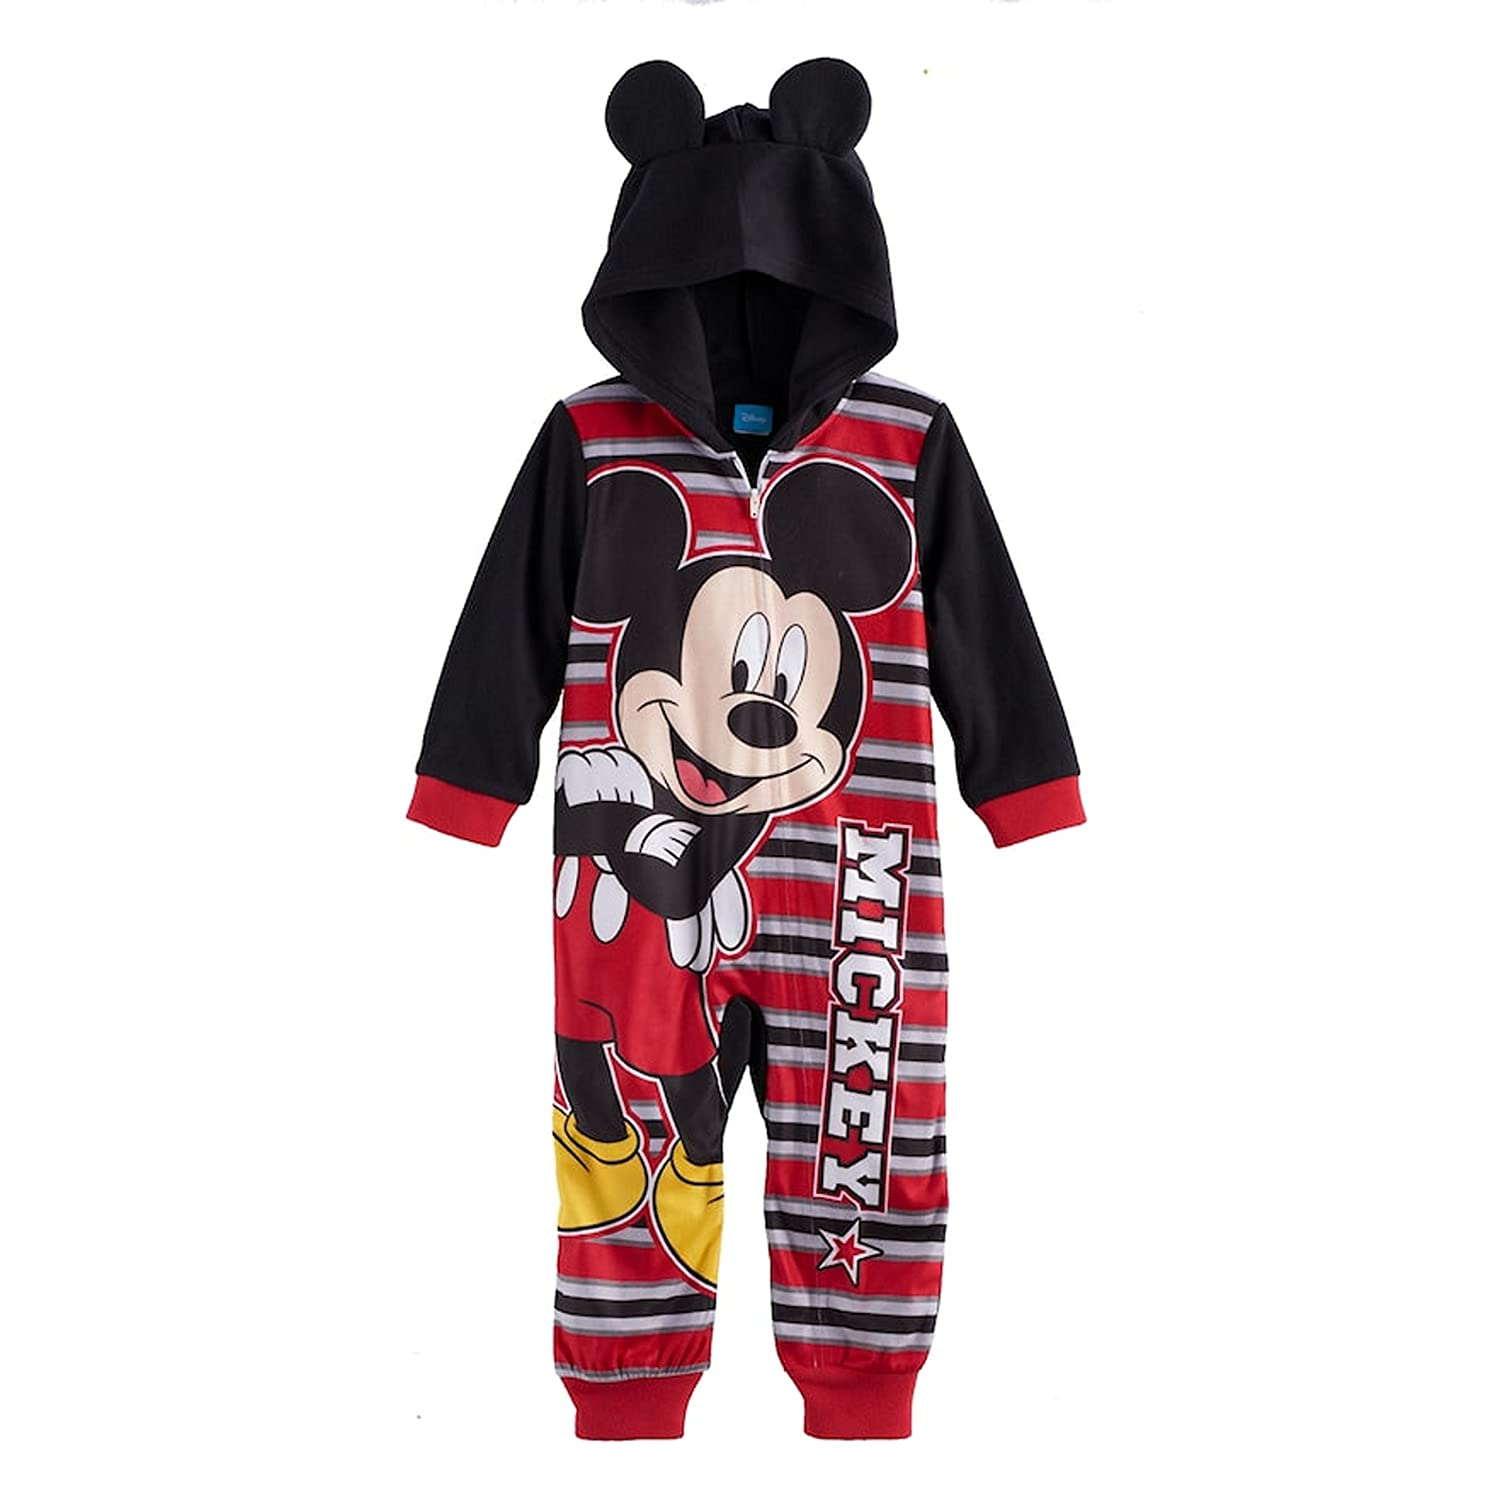 2123e3d5a Amazon.com  Disney s Mickey Mouse Hooded One-Piece Pajamas Toddler ...